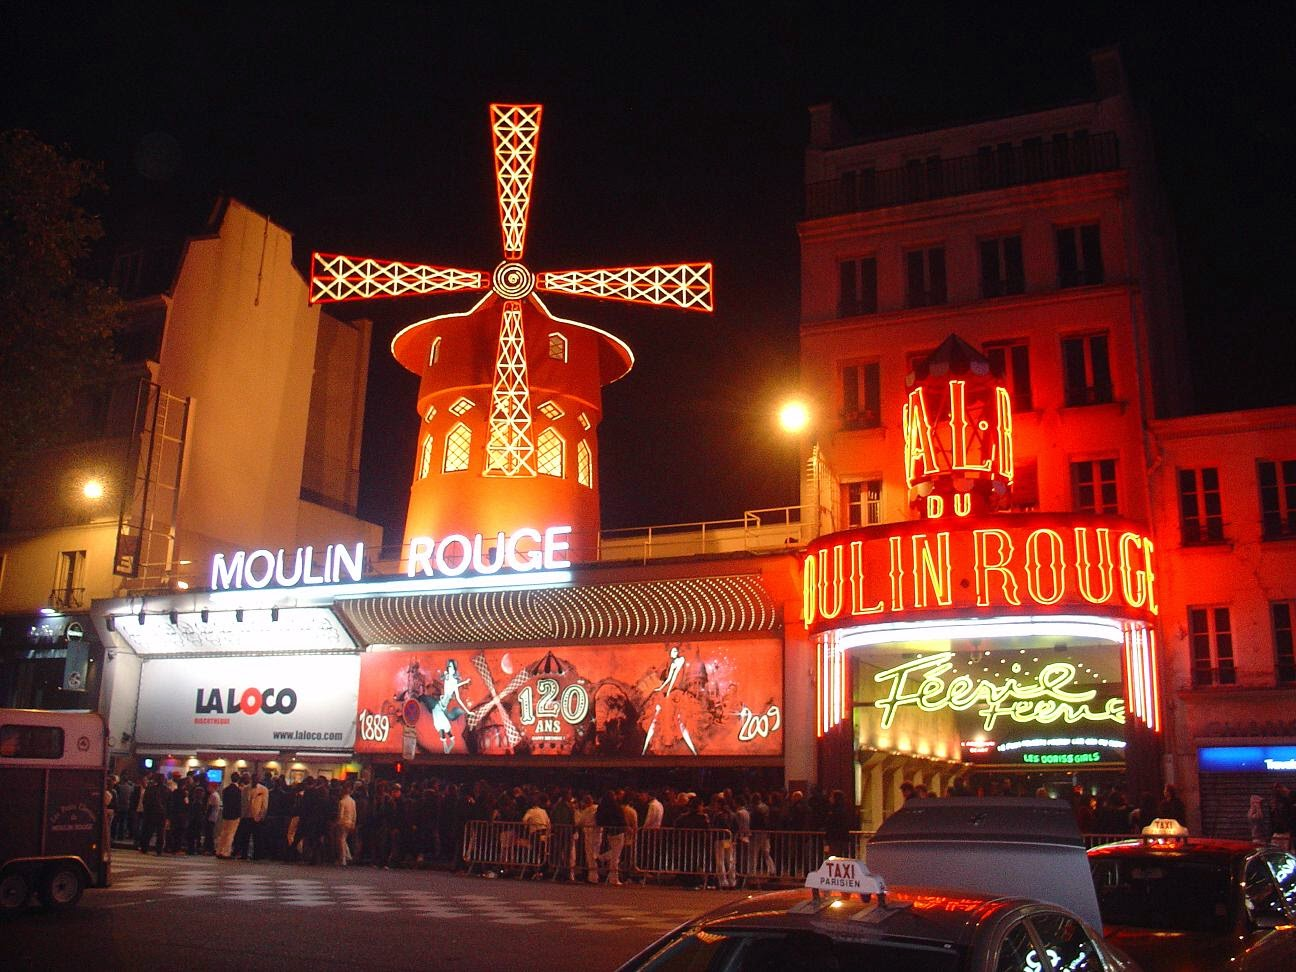 imagenes de moulin rouge paris